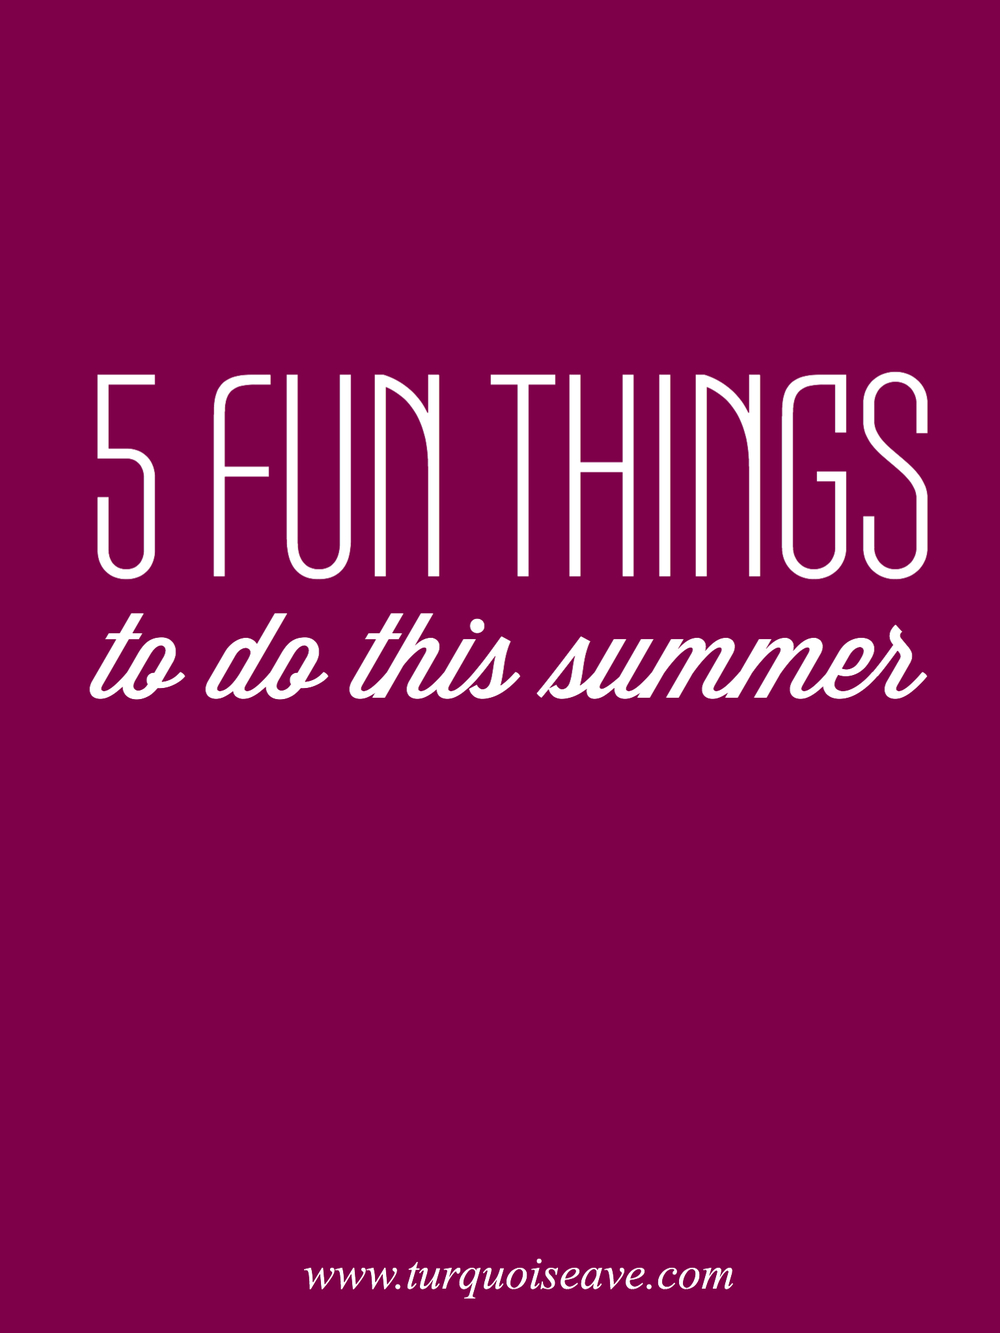 Pin this image! 5 Fun Things To Do This Summer - great inexpensive ideas for families or couples!